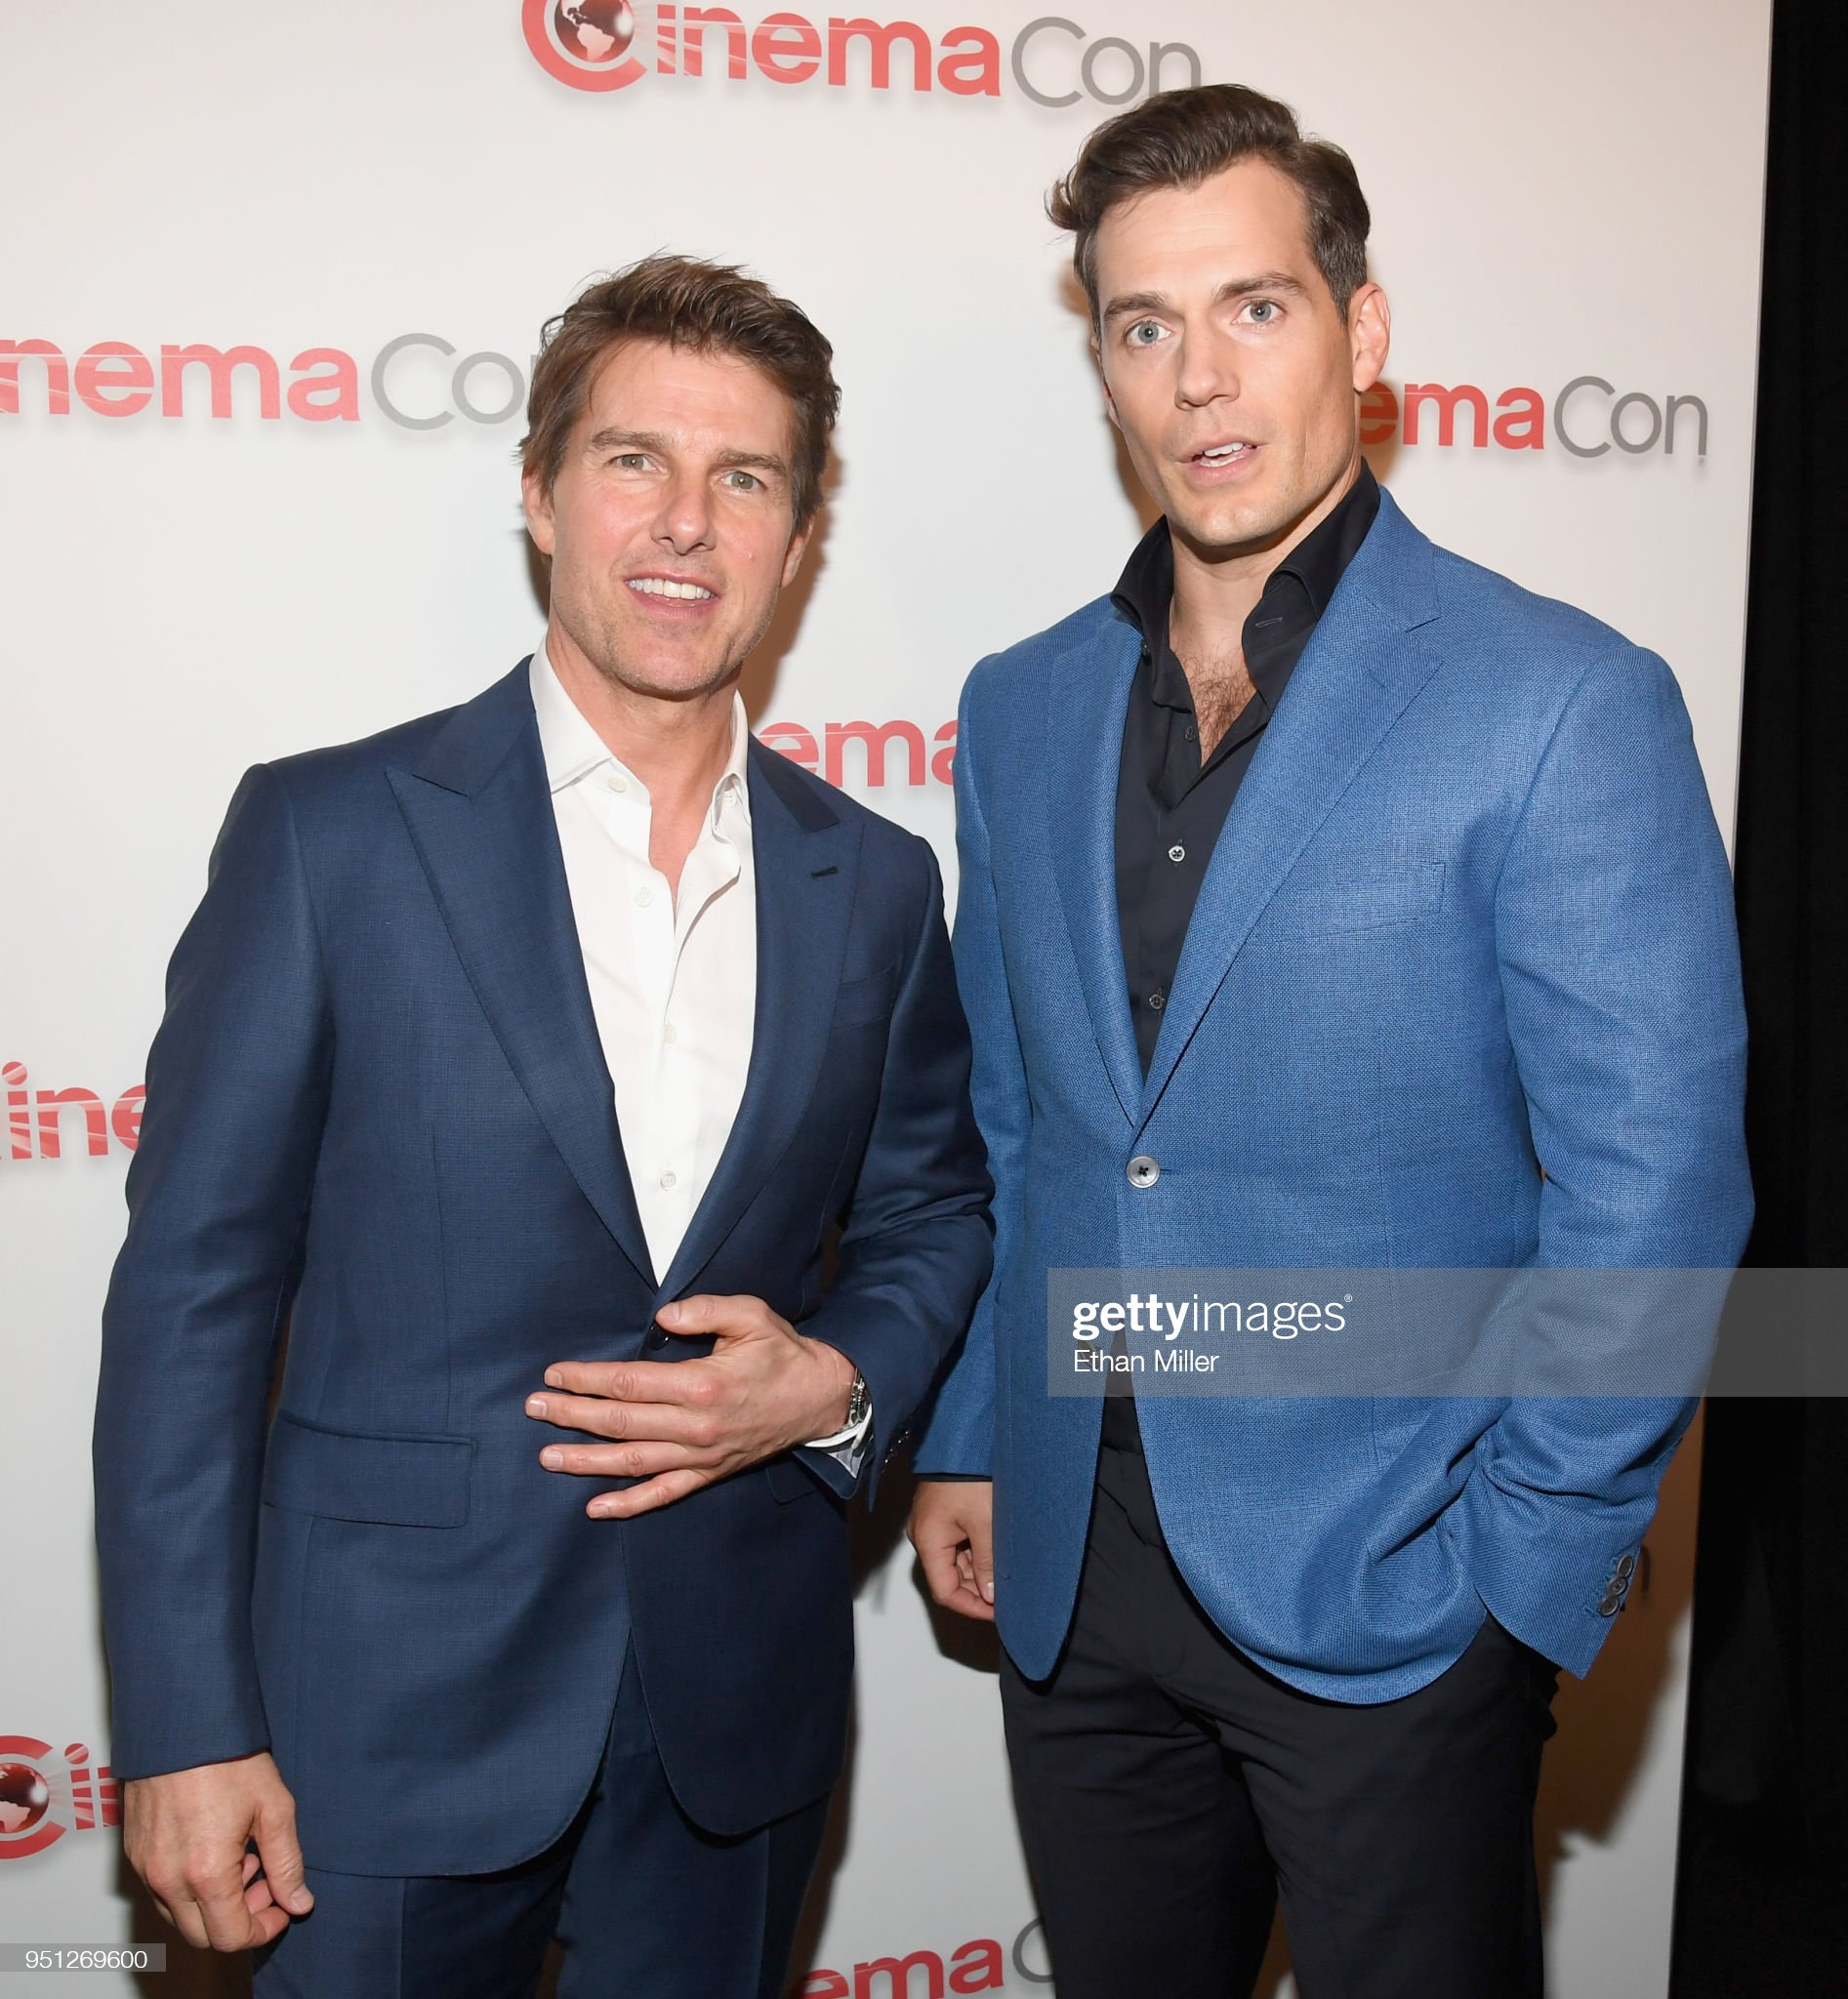 ¿Cuánto mide Henry Cavill? - Altura - Real height Actor-tom-cruise-and-henry-cavill-attend-the-cinemacon-2018-paramount-picture-id951269600?s=2048x2048